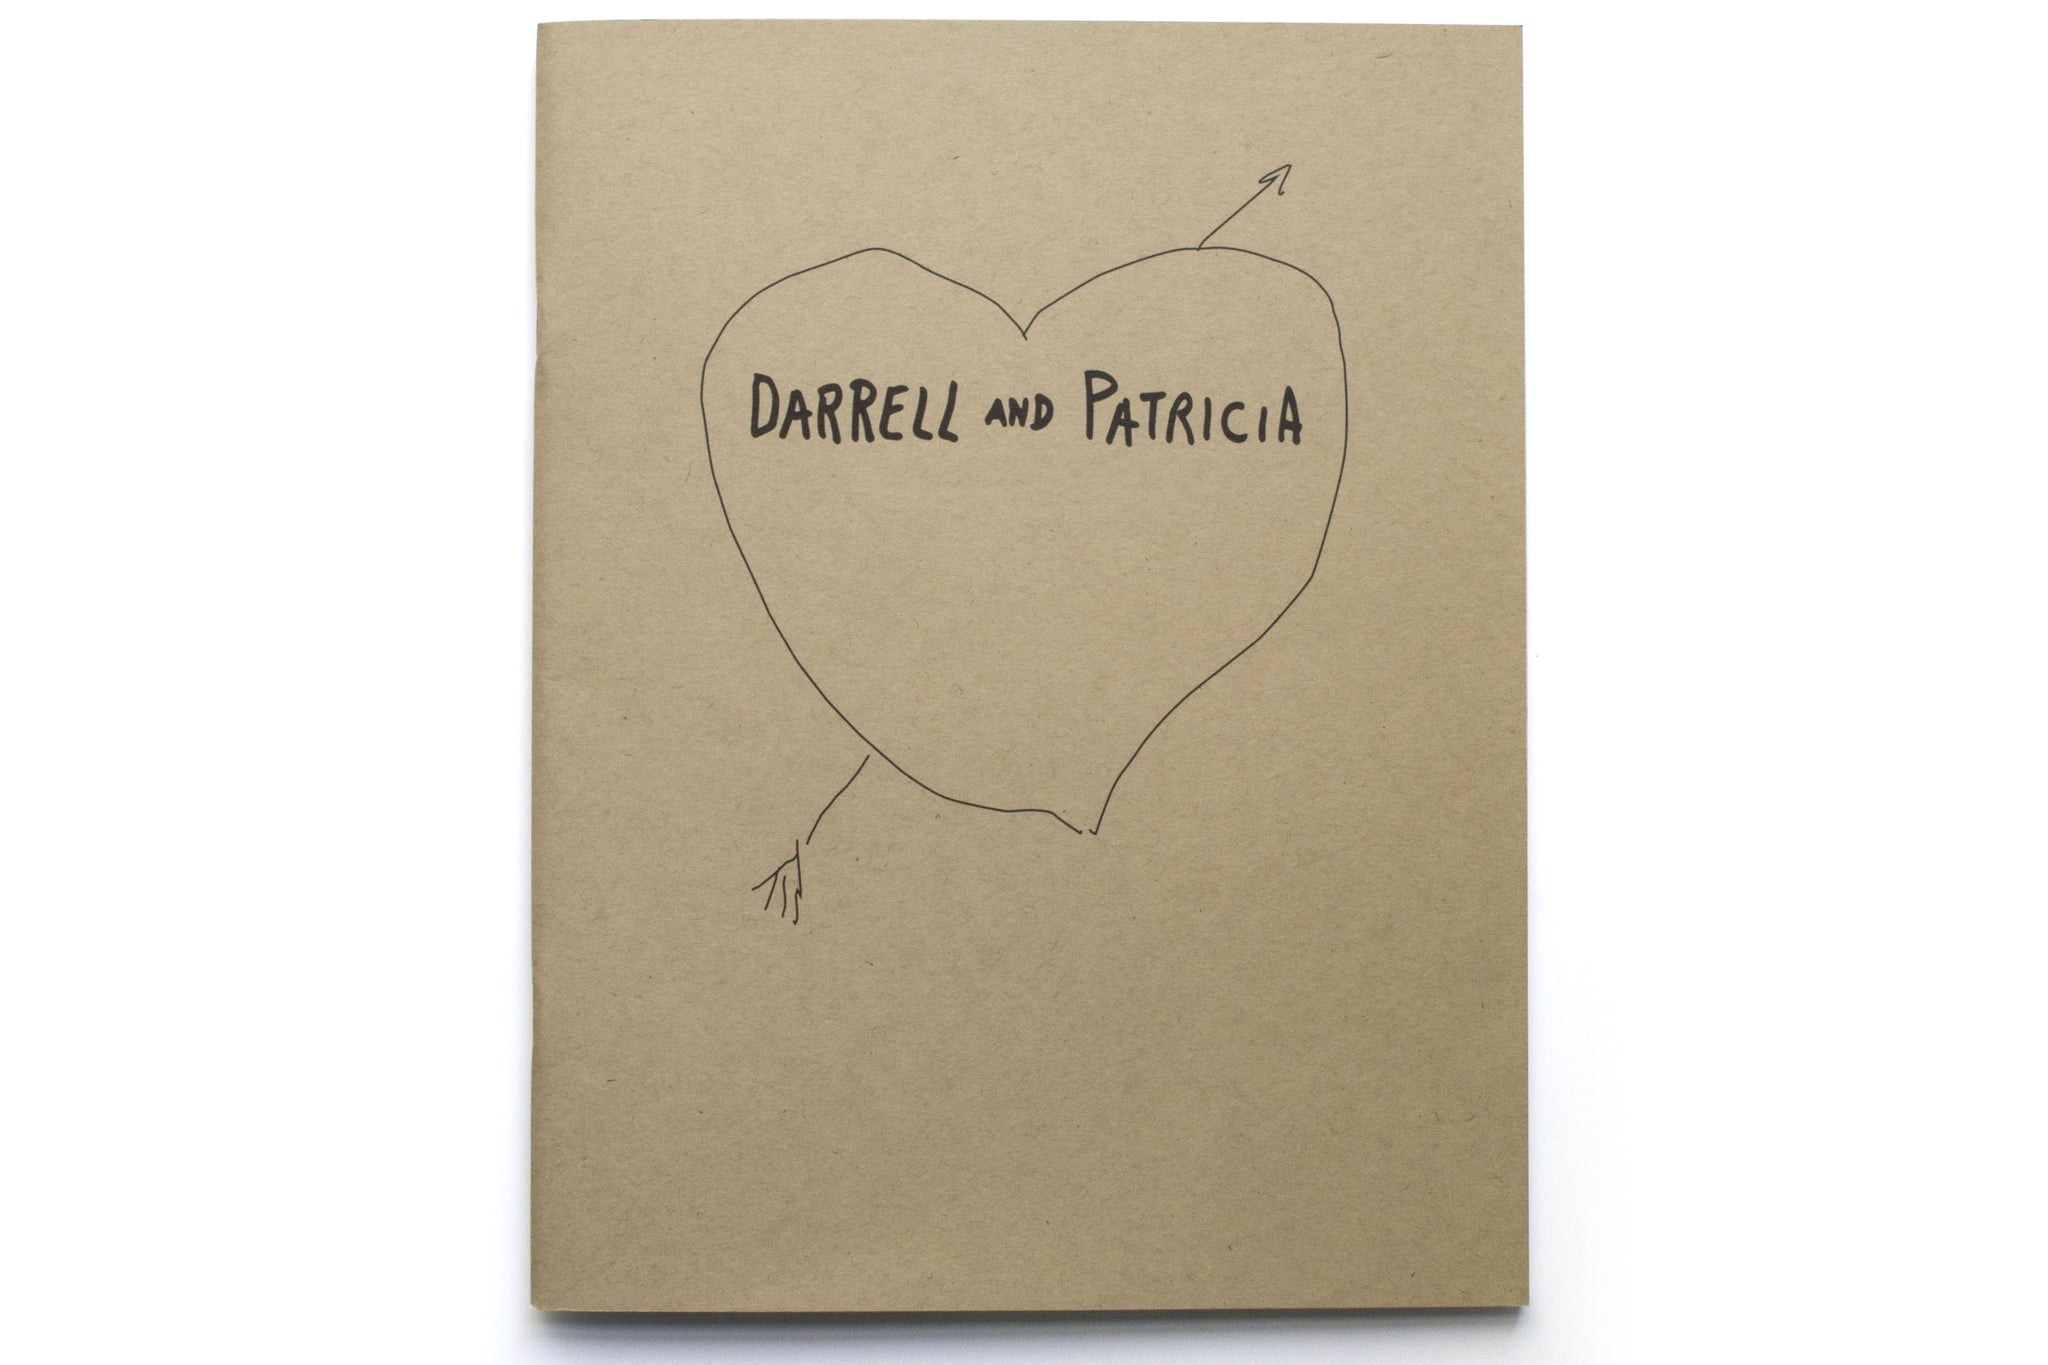 Darrell and Patricia: A Love Story